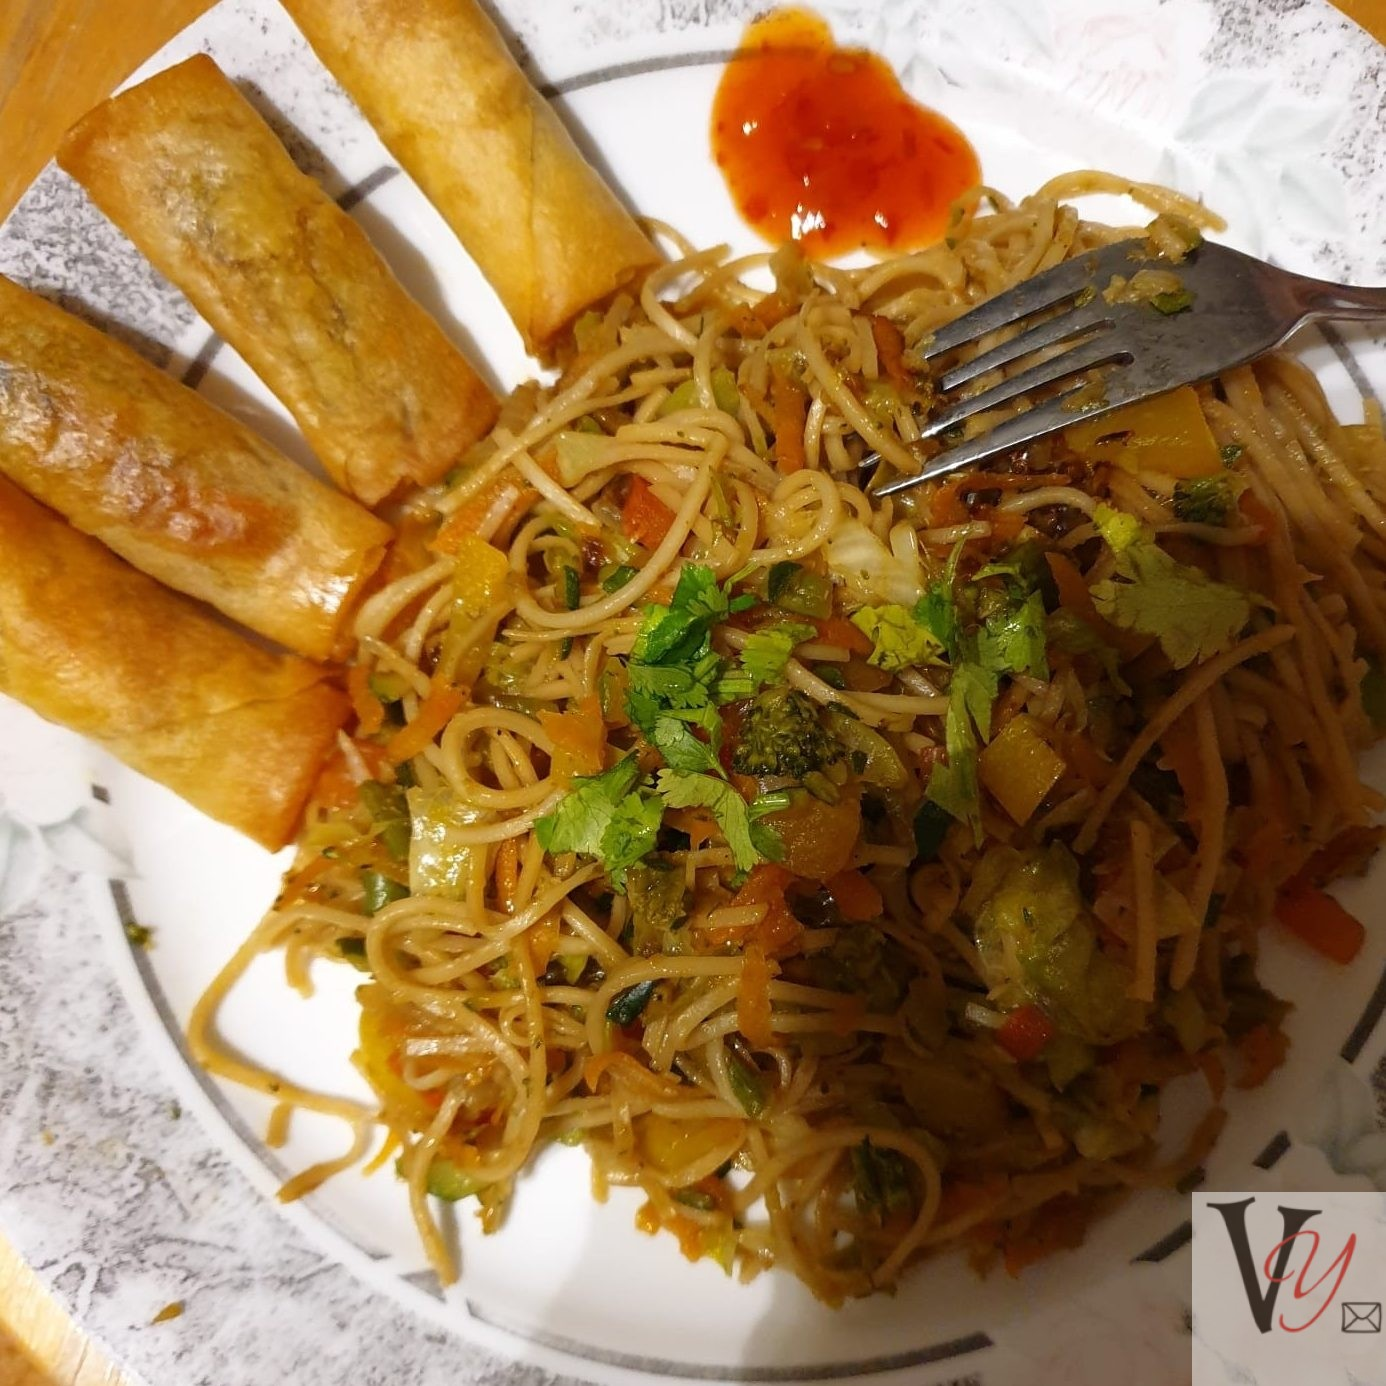 Spring rolls with Chinese noodles